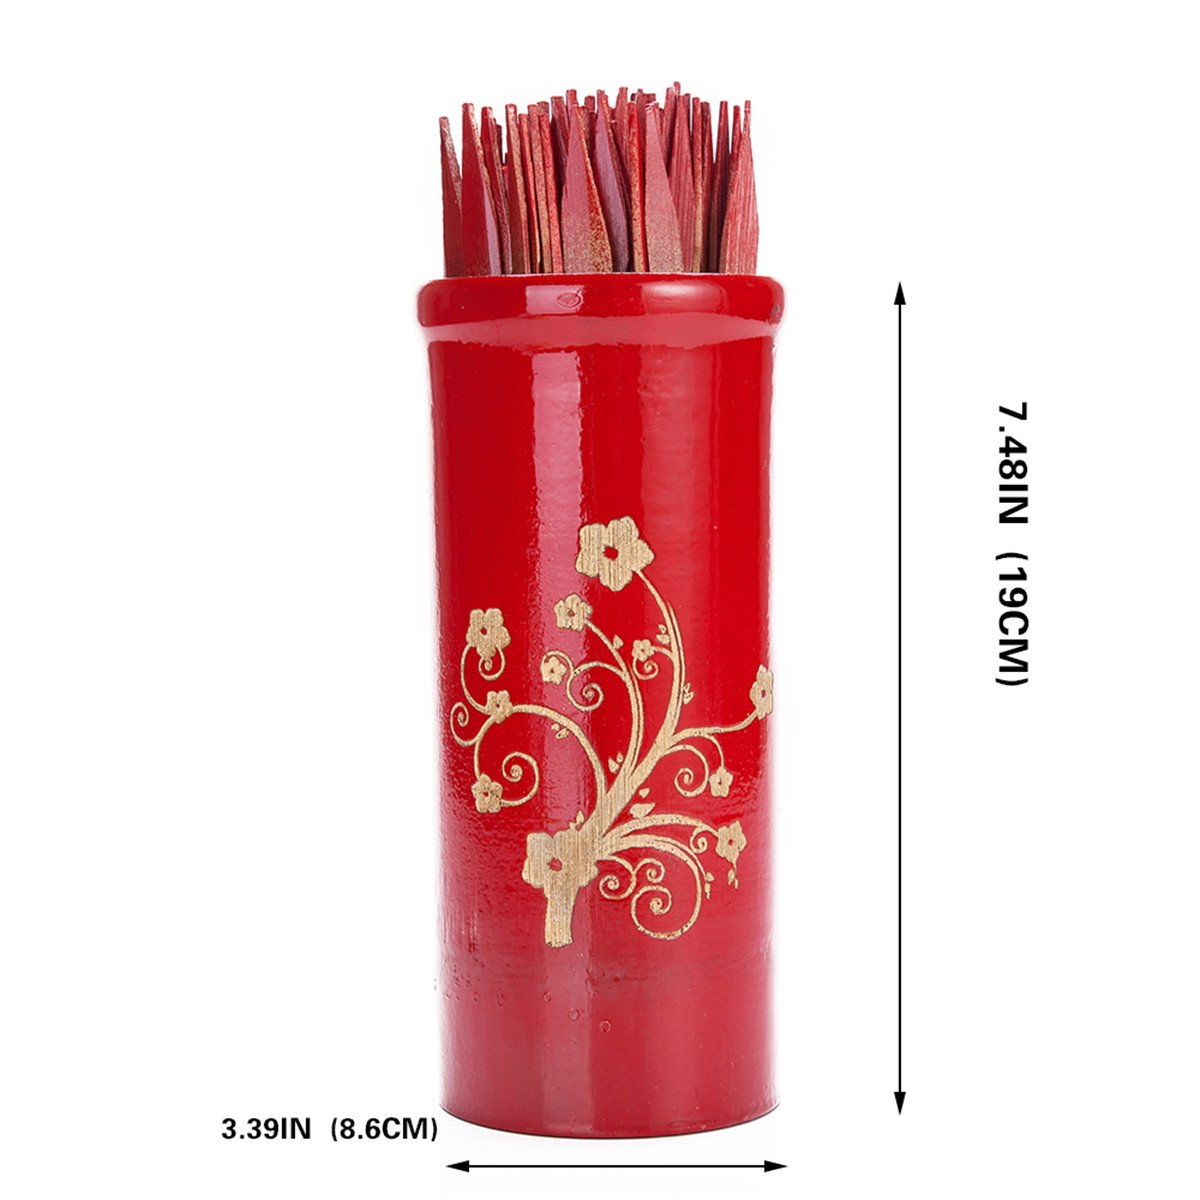 Chinese Fortune Telling Sticks W. Instruction Booklet Red Bamboo Cansiter Golden Fortune Floral Design